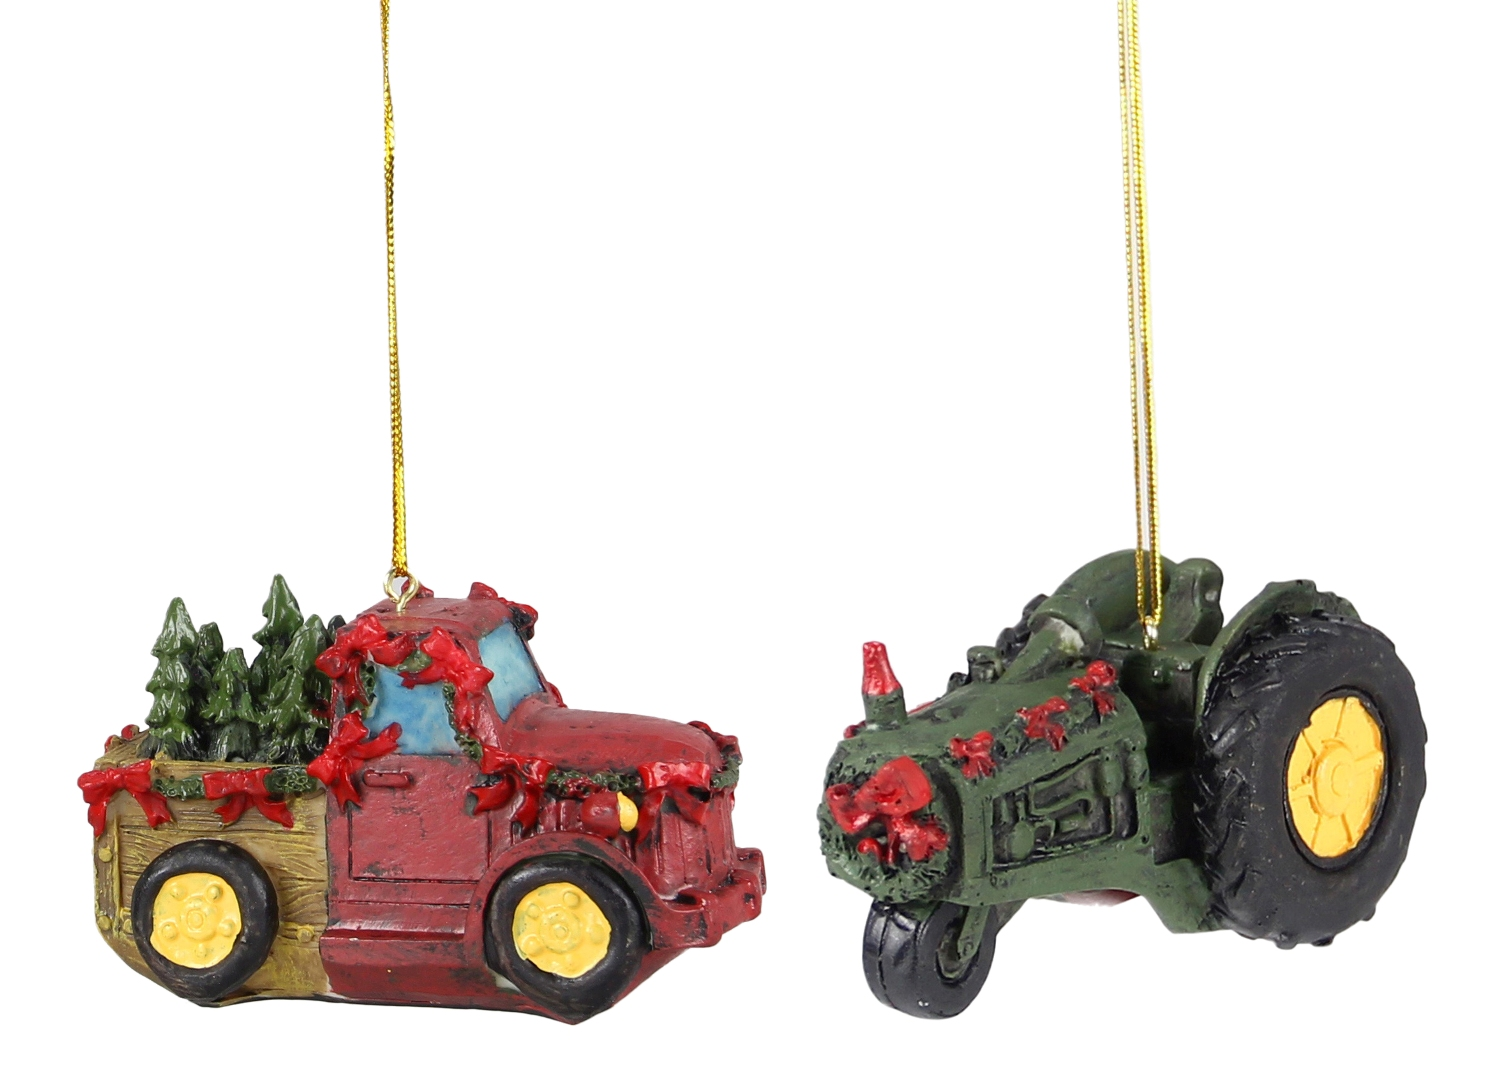 Red Farm Truck With Trees And Green Tractor Christmas Holiday Ornaments Set Of 2 Walmart Com Walmart Com